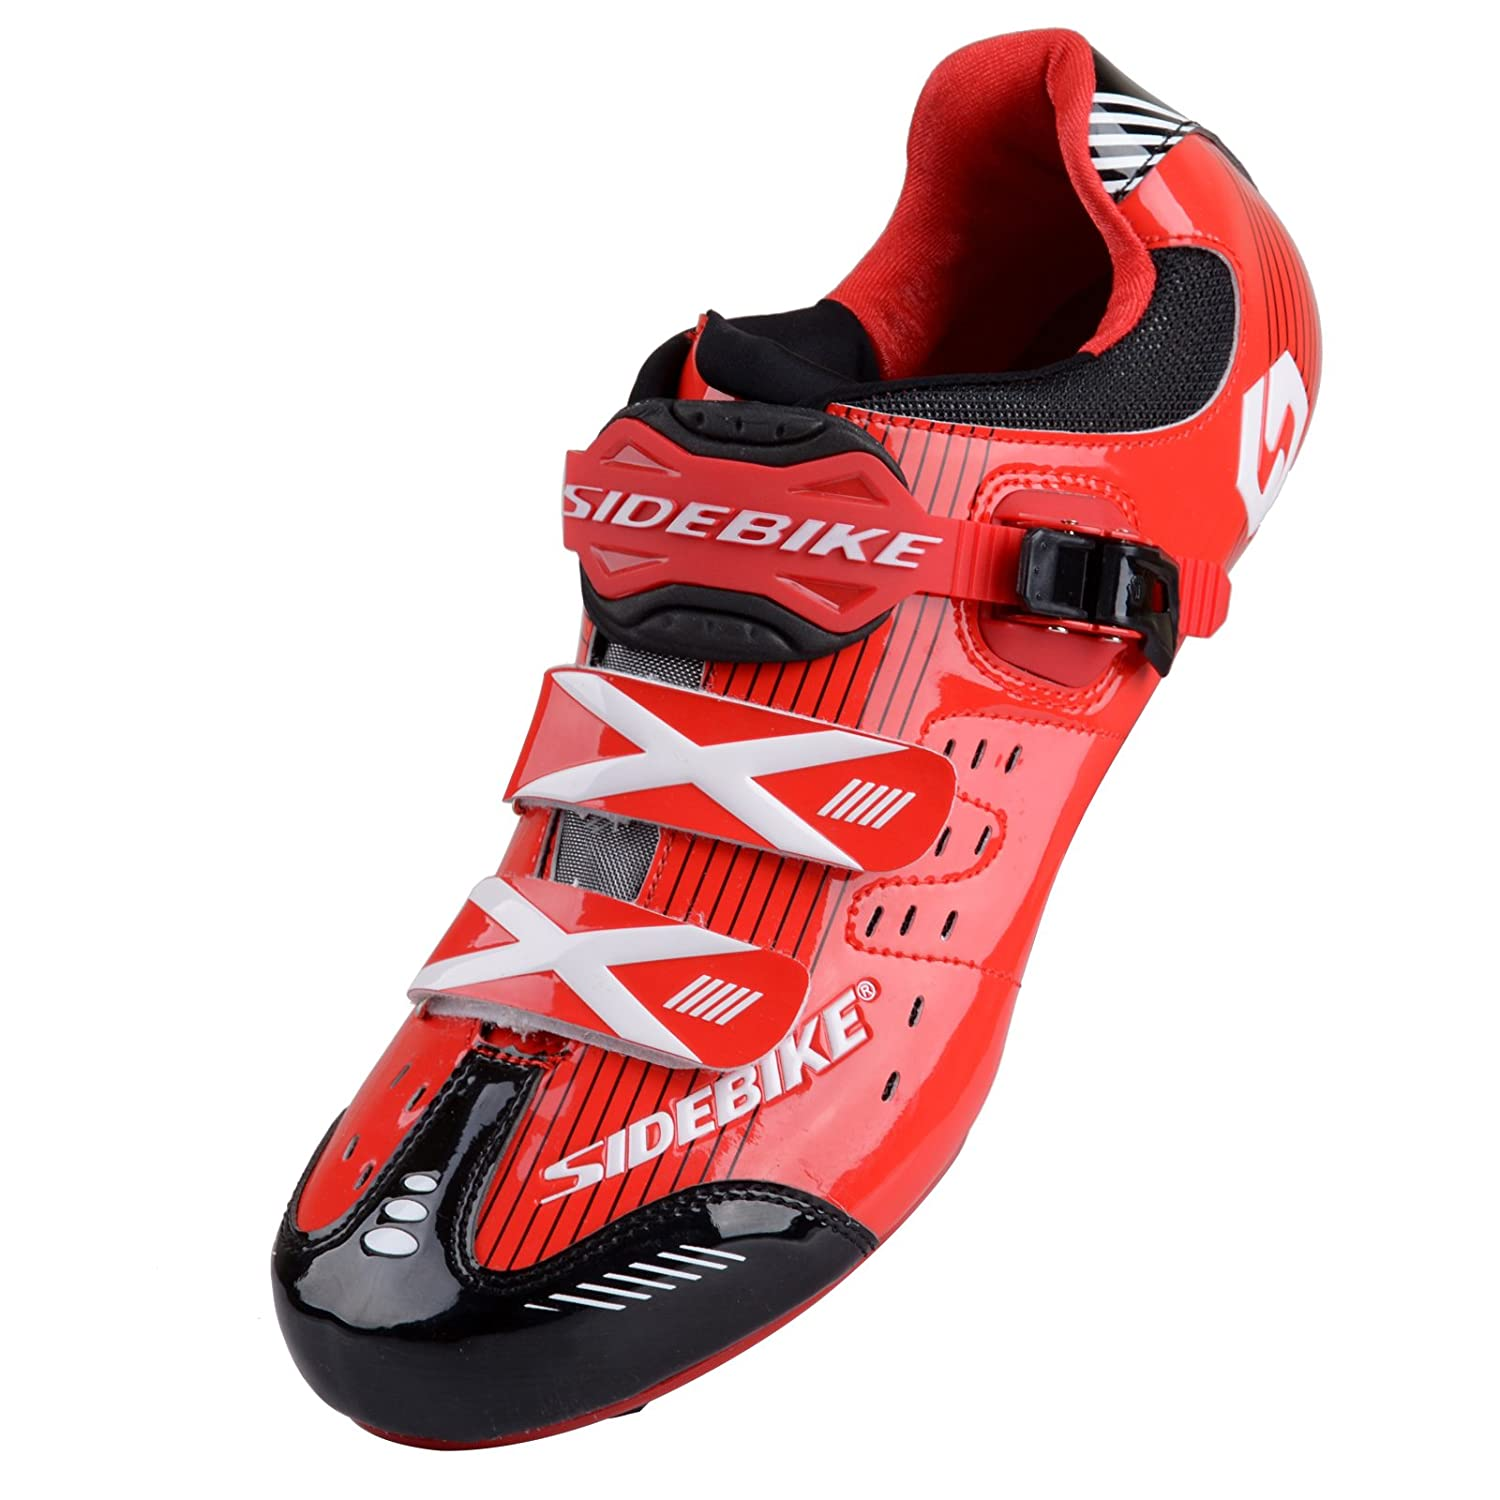 Red Black for Road Smartodoors Sidebike SD002 Men's All-Around Road Cycling shoes with Carbon Soles